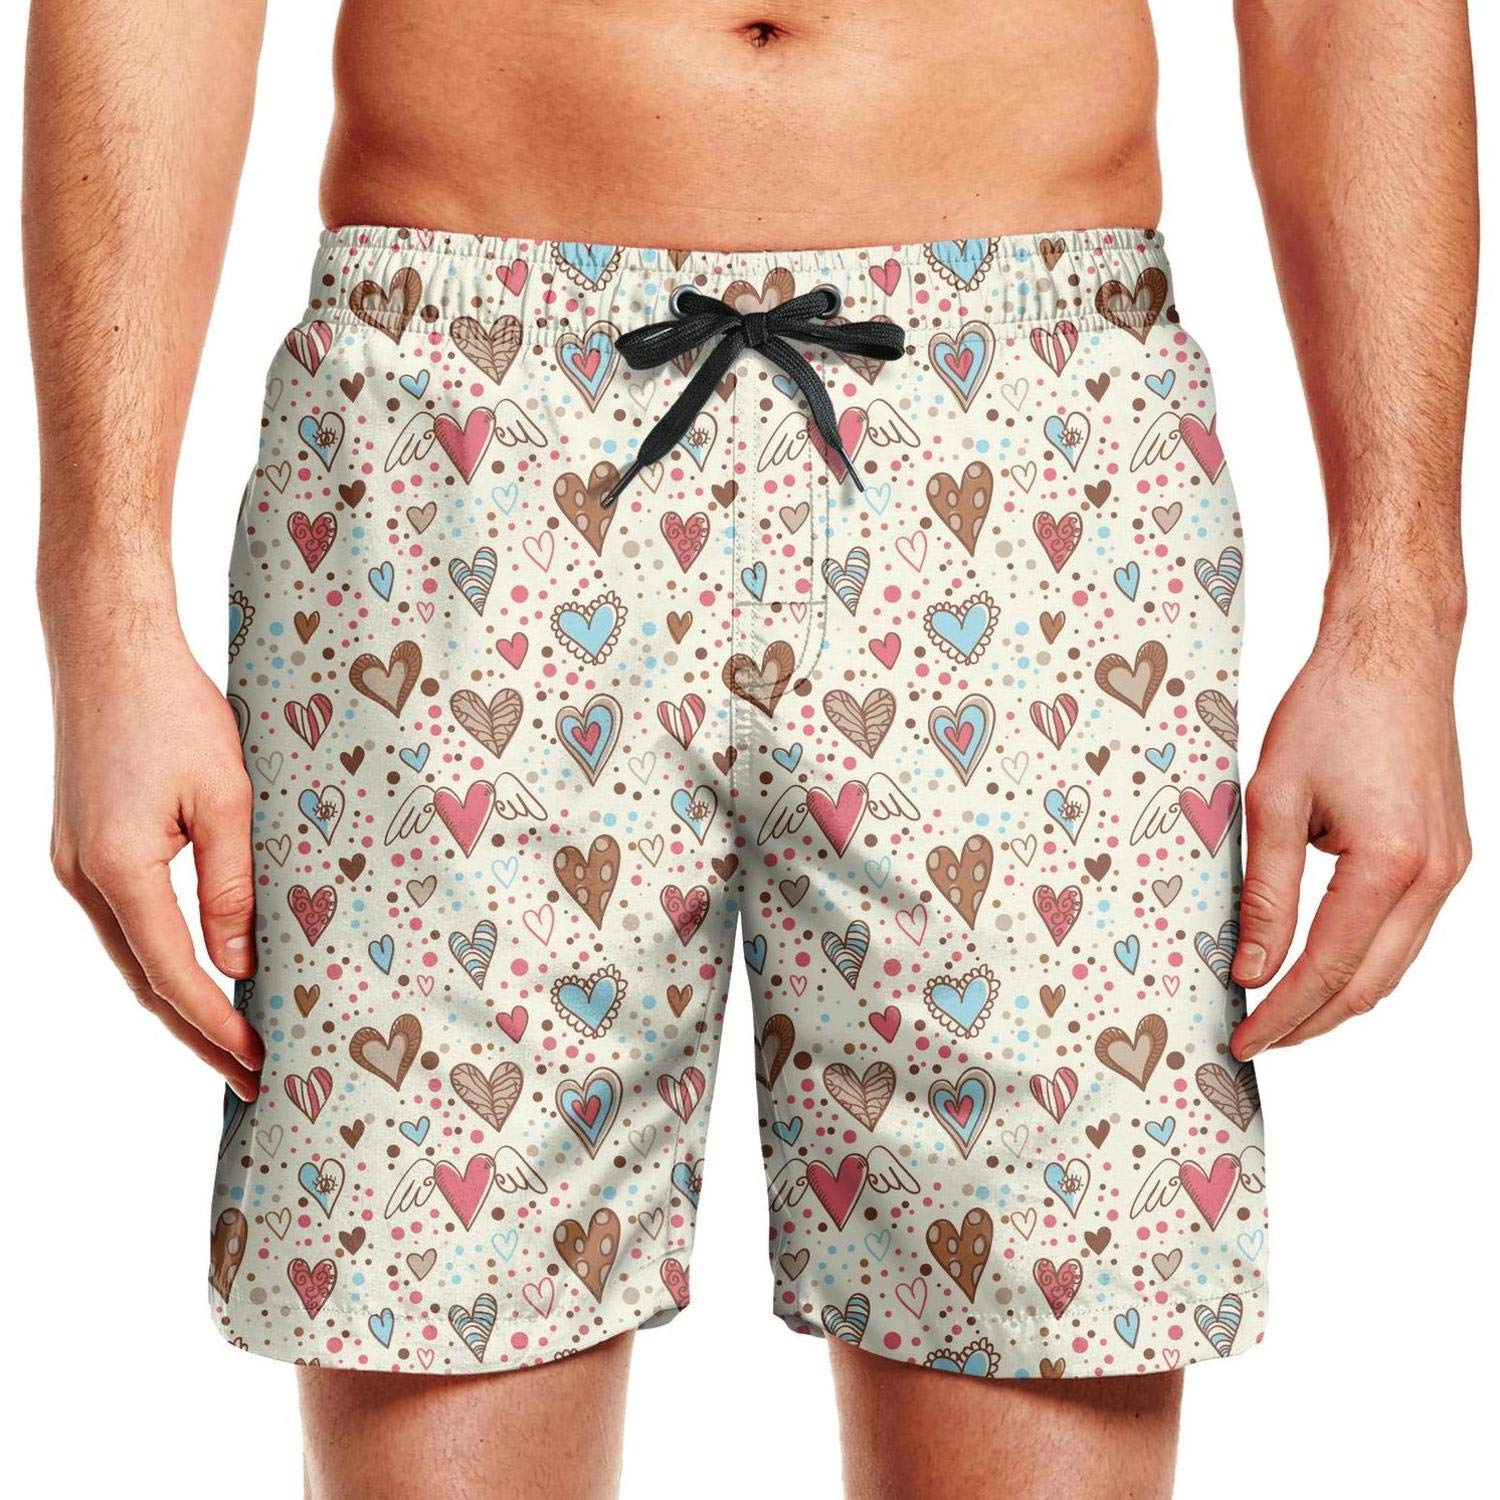 SYBING Love Angel Mens Funny Quick Dry Water Resistant Sports Running Beach Board Shorts